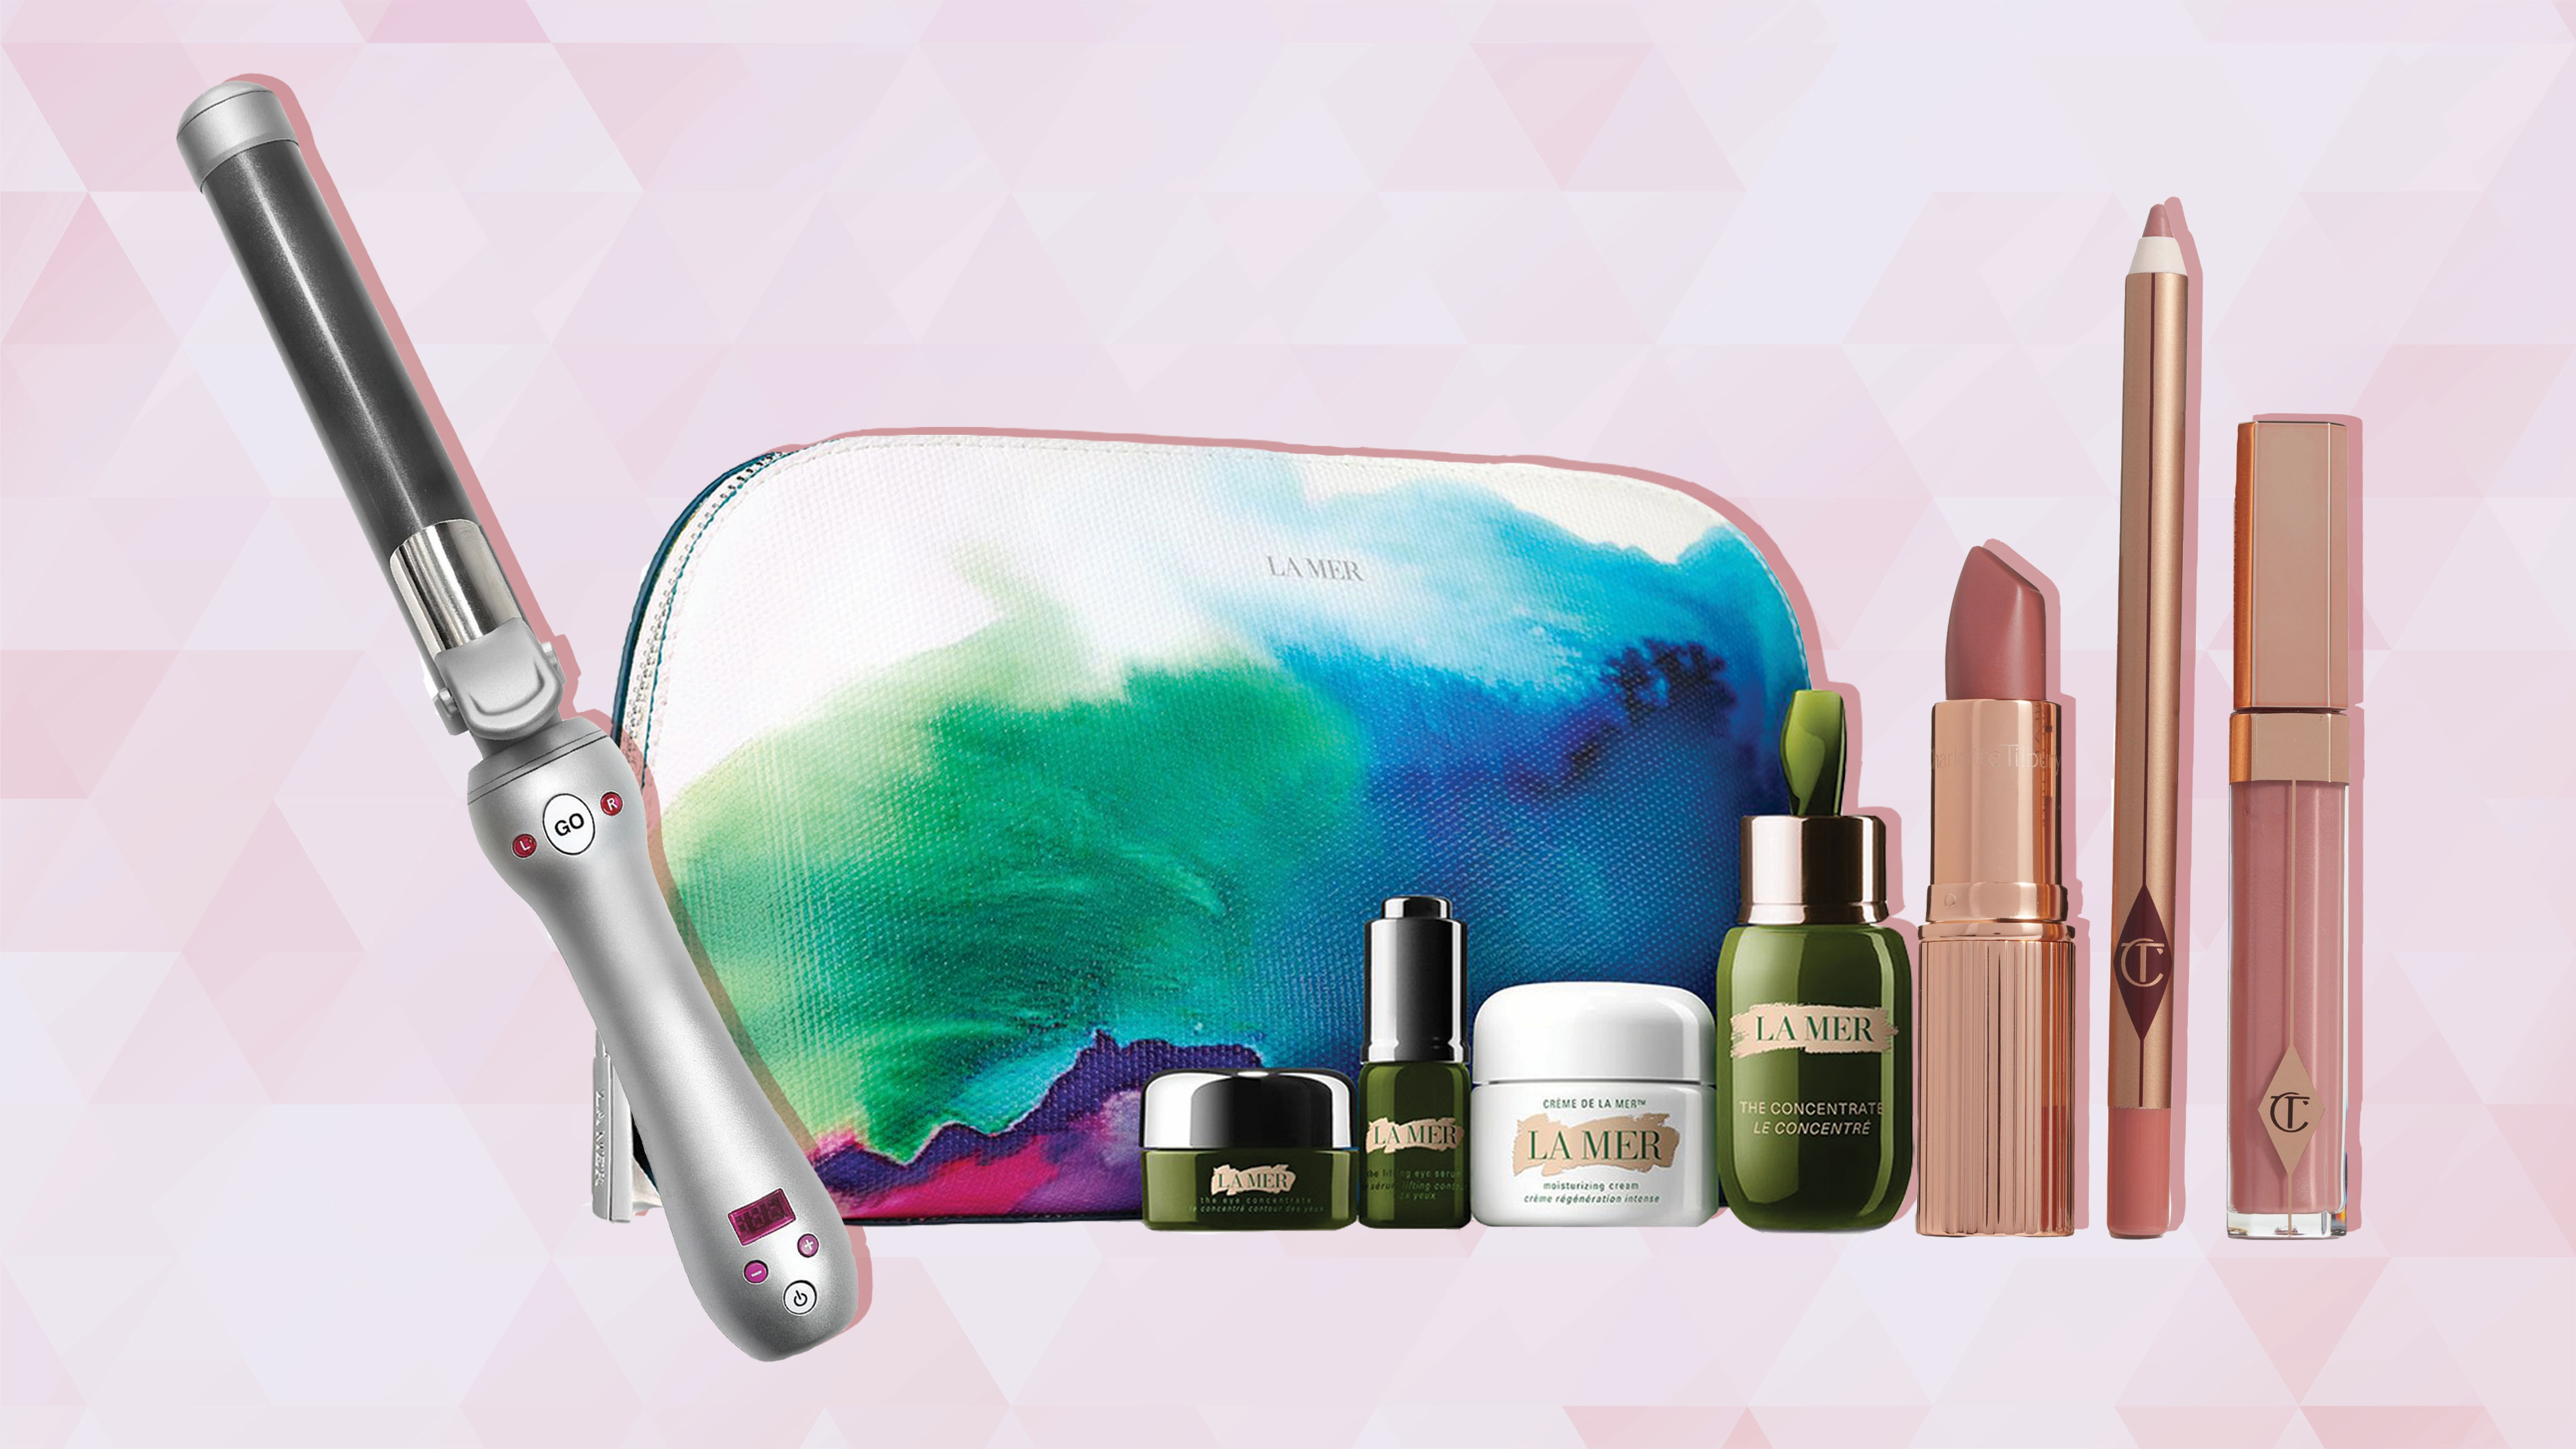 Beauty products at Nordstrom sale